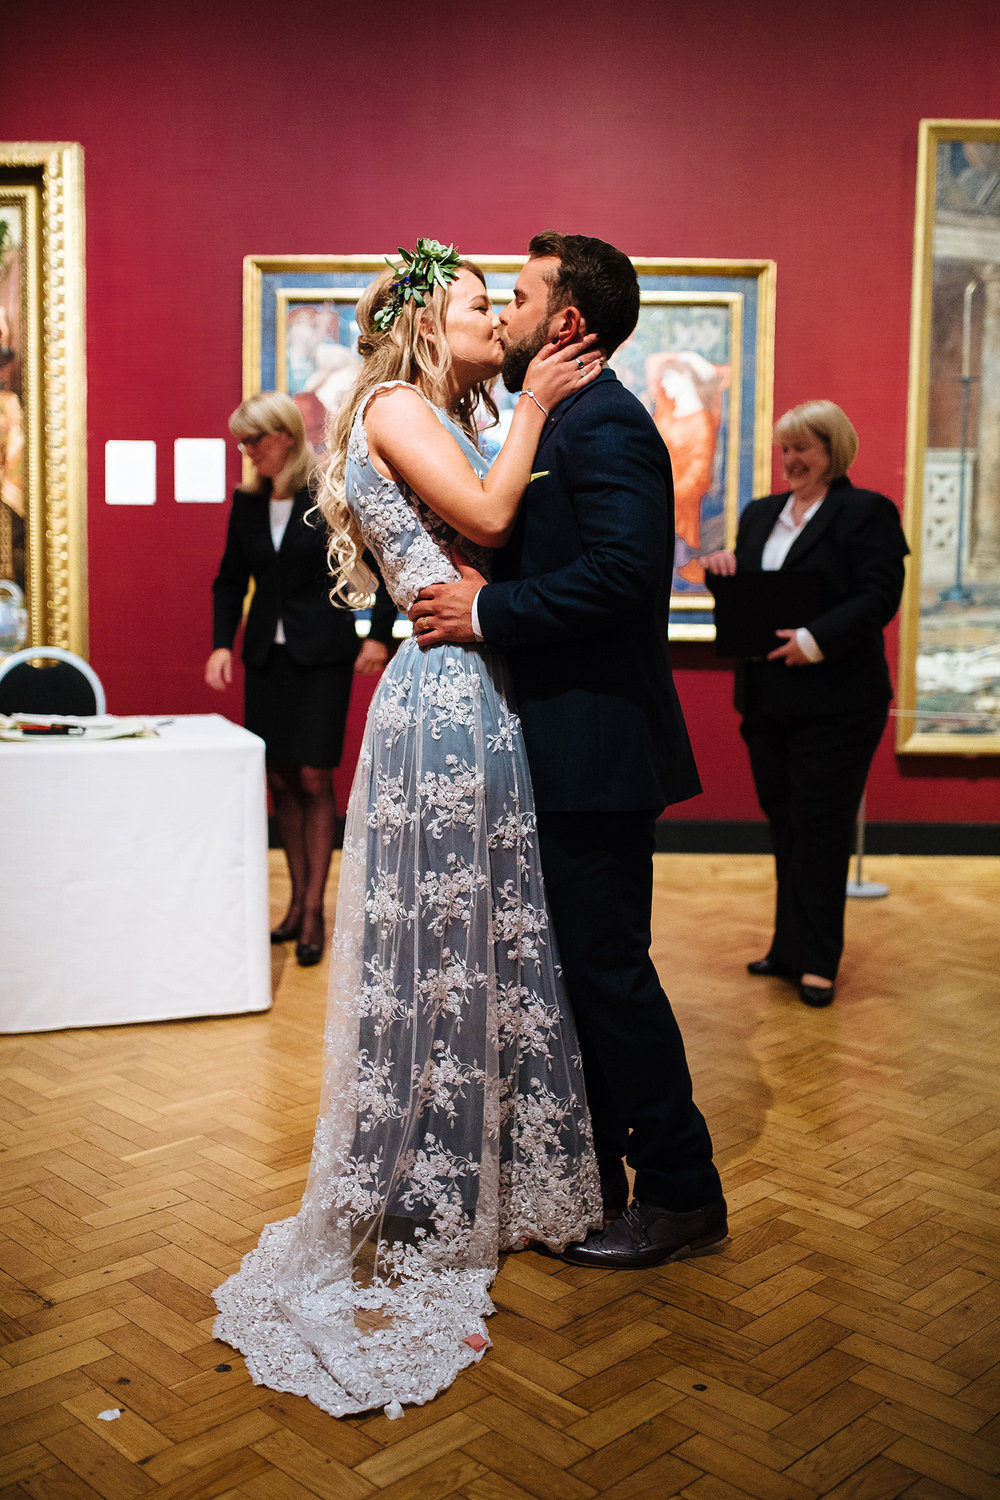 LAING ART GALLERY NEWCASTLE WEDDING PHOTOGRAPHY 75.JPG